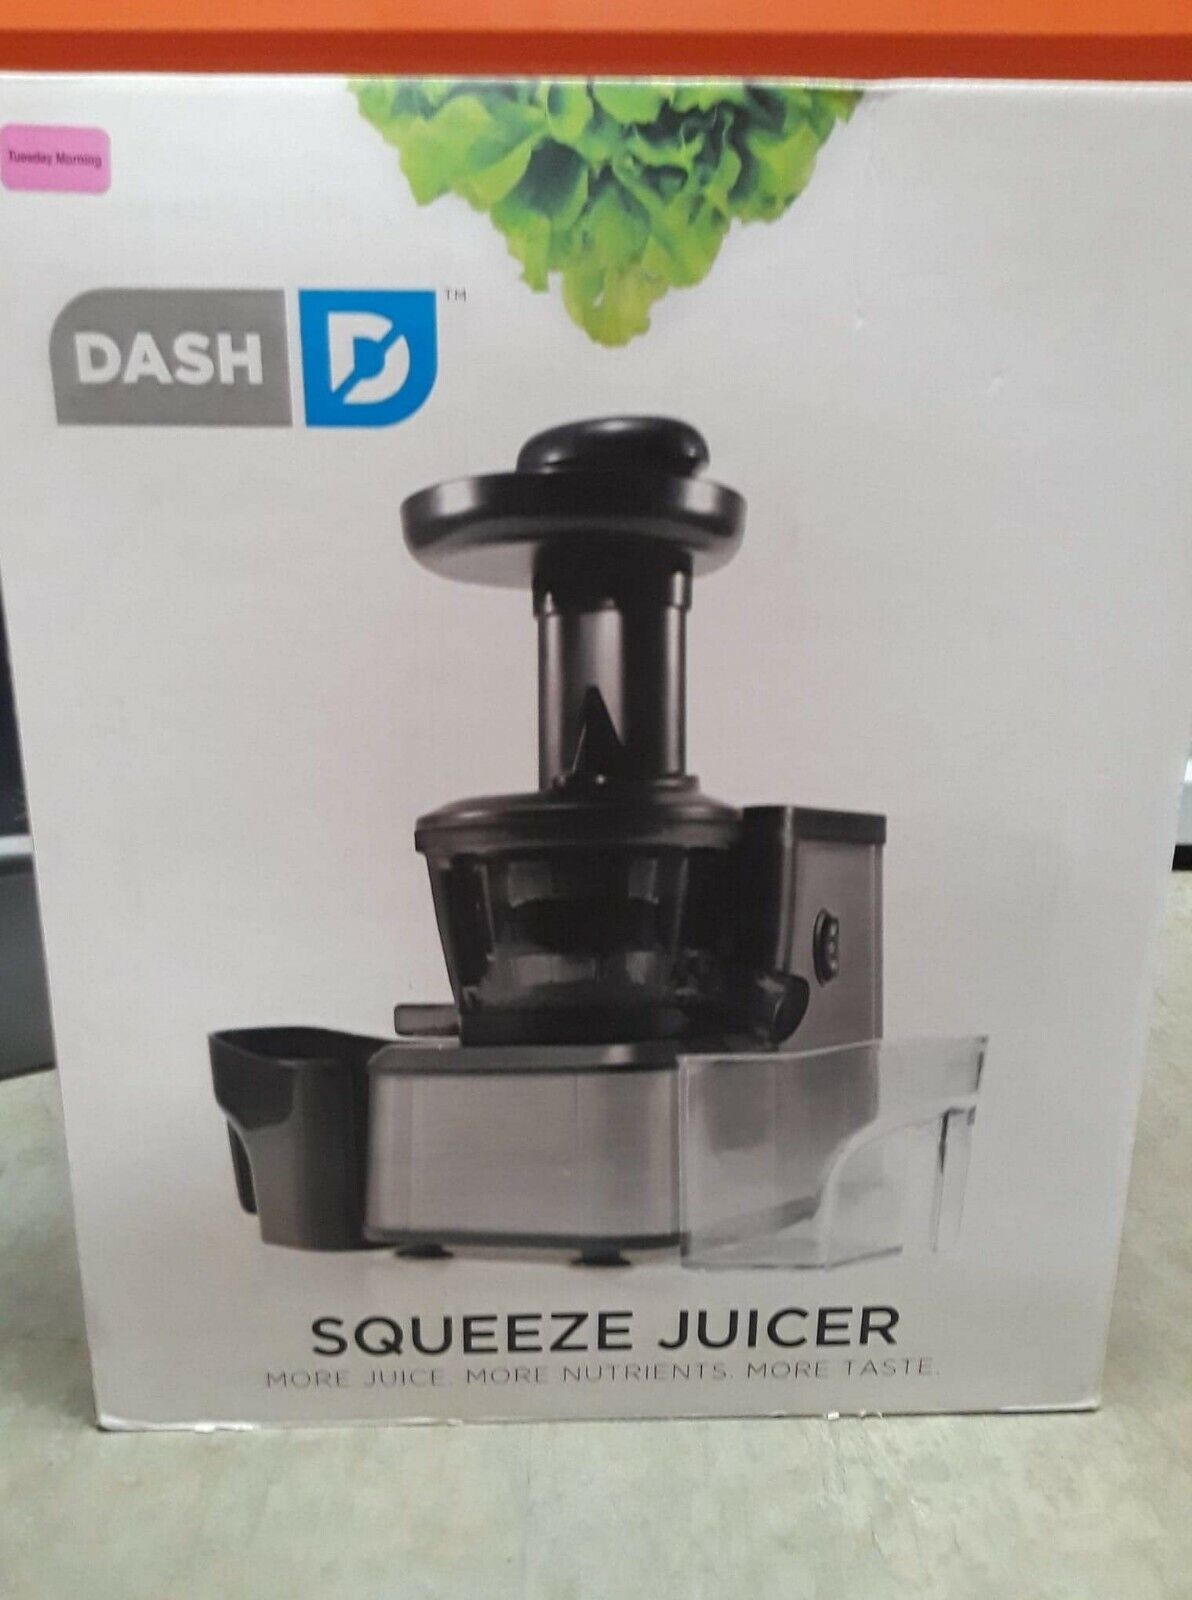 NEW IN BOX Dash - Squeeze Juicer